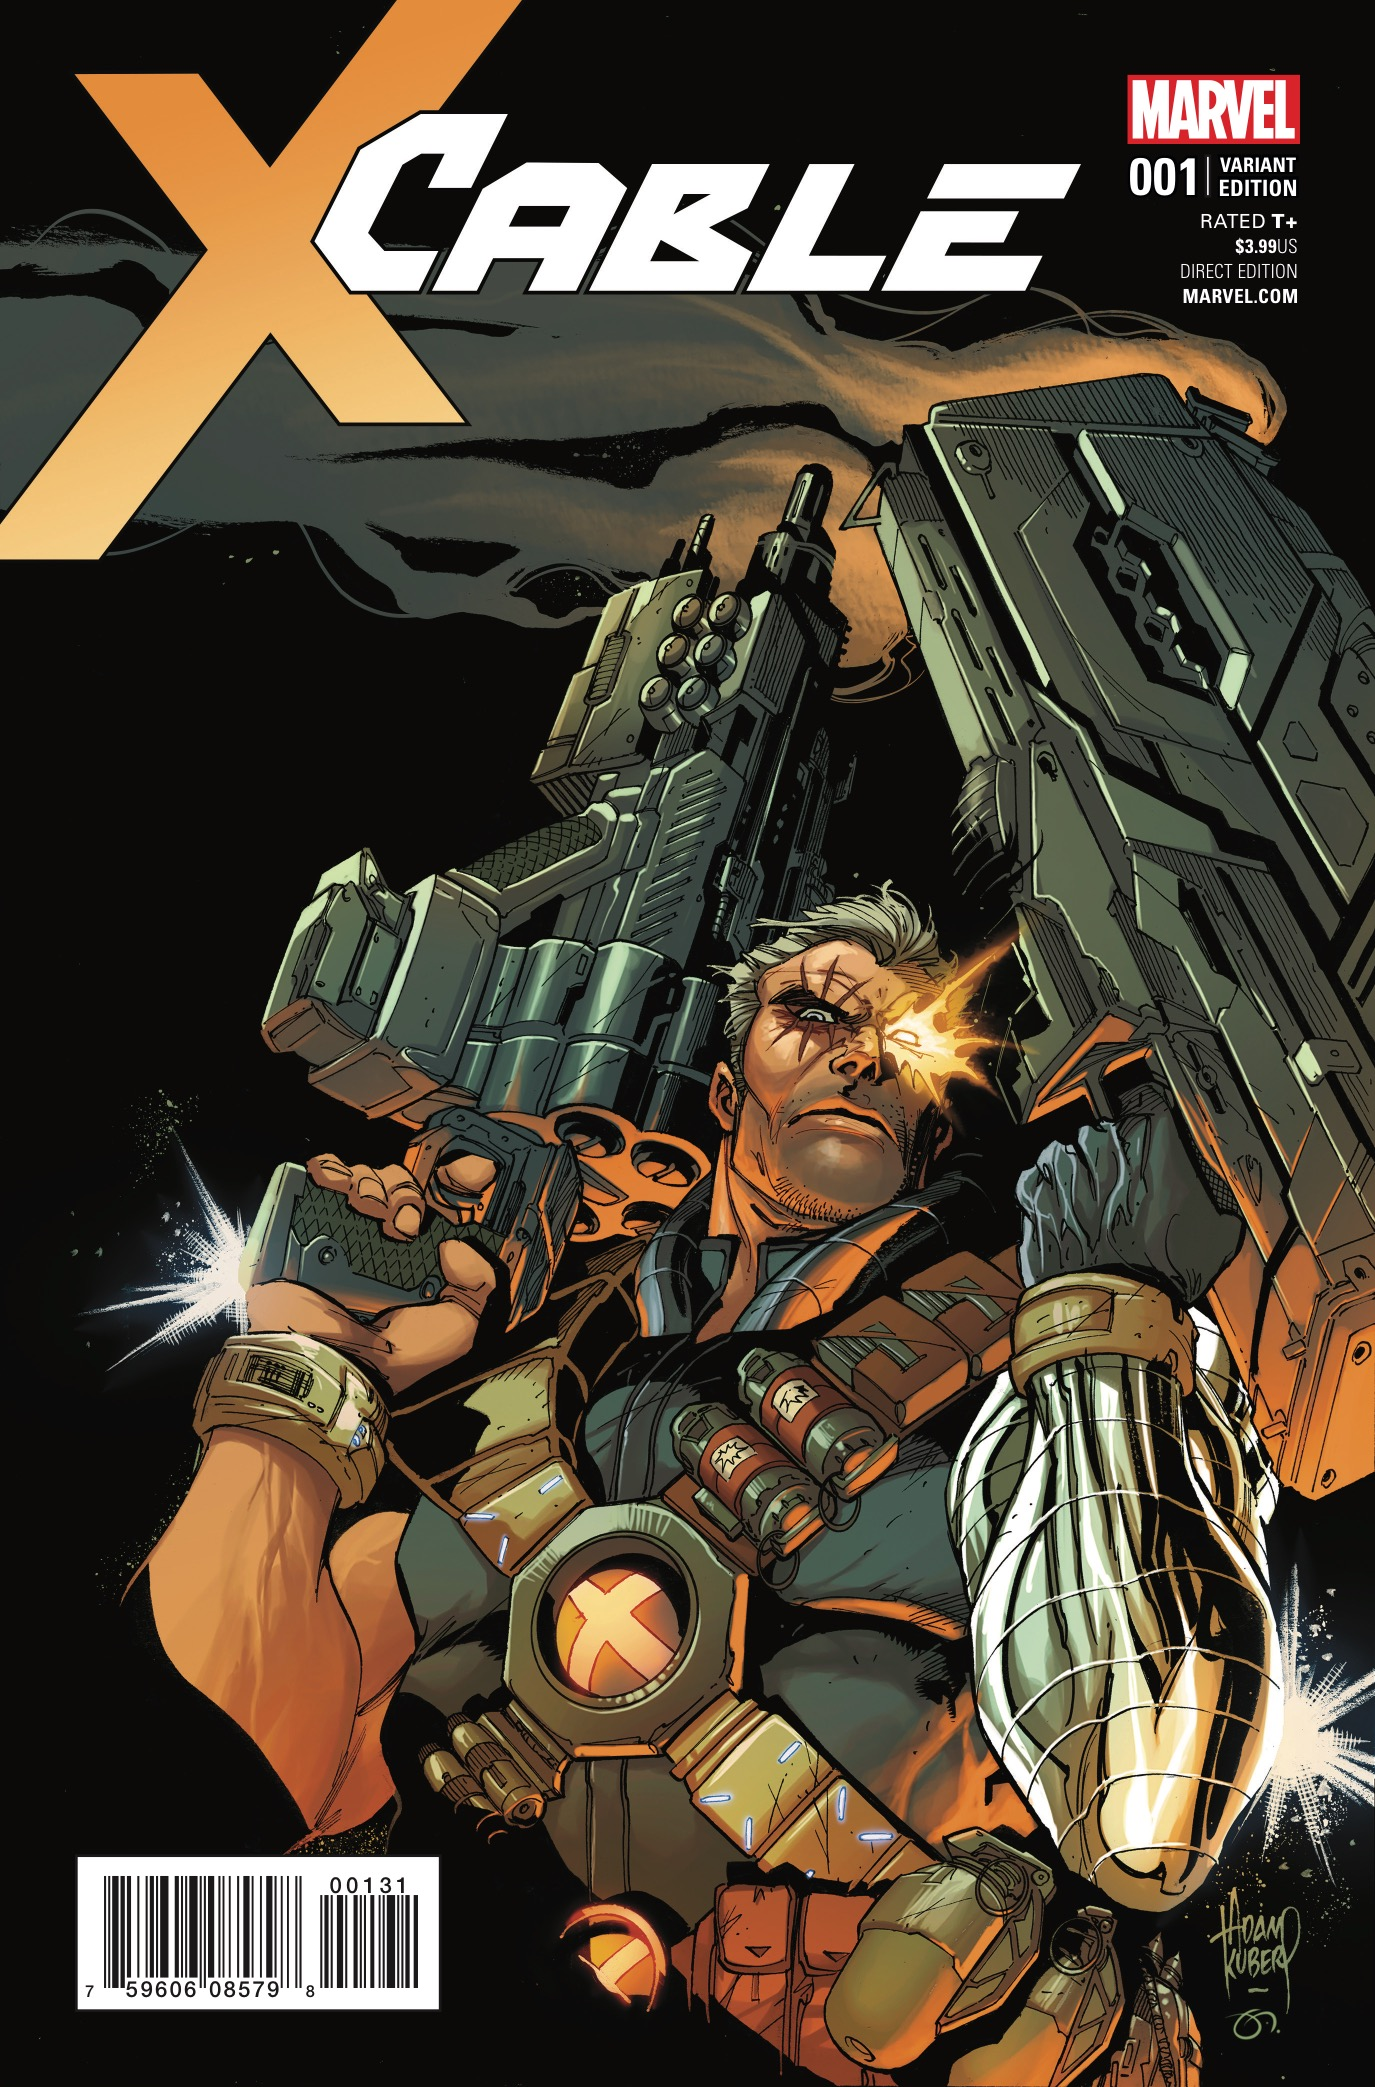 Judging by the preview, Cable is going to be doing some major time travelling and not just to the usual locations; namely we mean not anywhere where X-Men are hanging out. Join series writer James Robinson and artist Carlos Pacheco as they take Cable to...the Old West!?